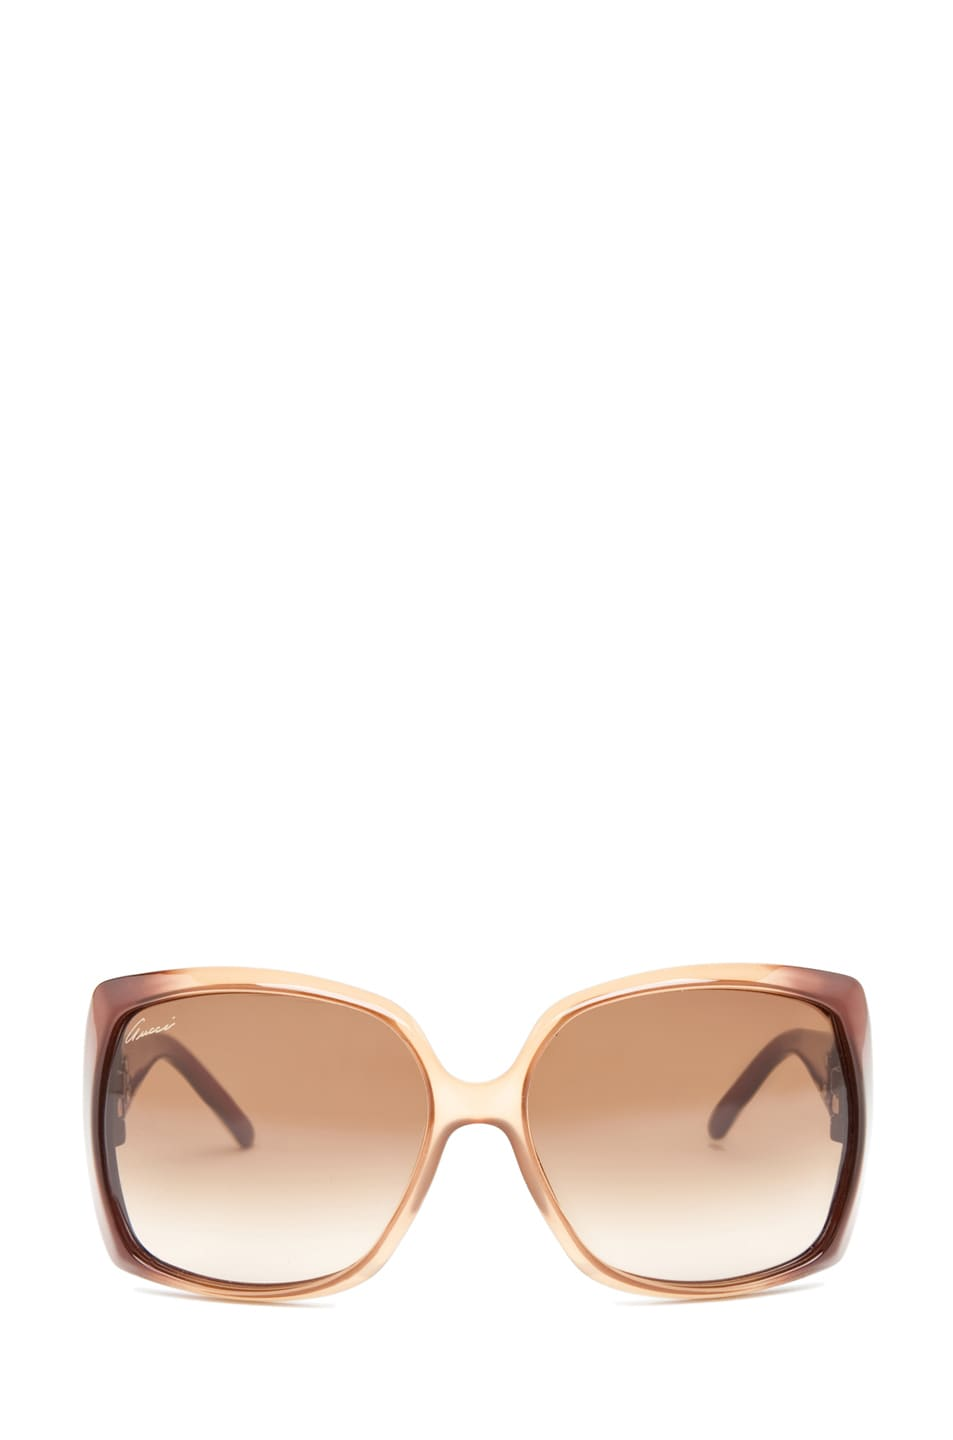 Image 1 of Gucci 3503 Sunglasses in Brown Beige